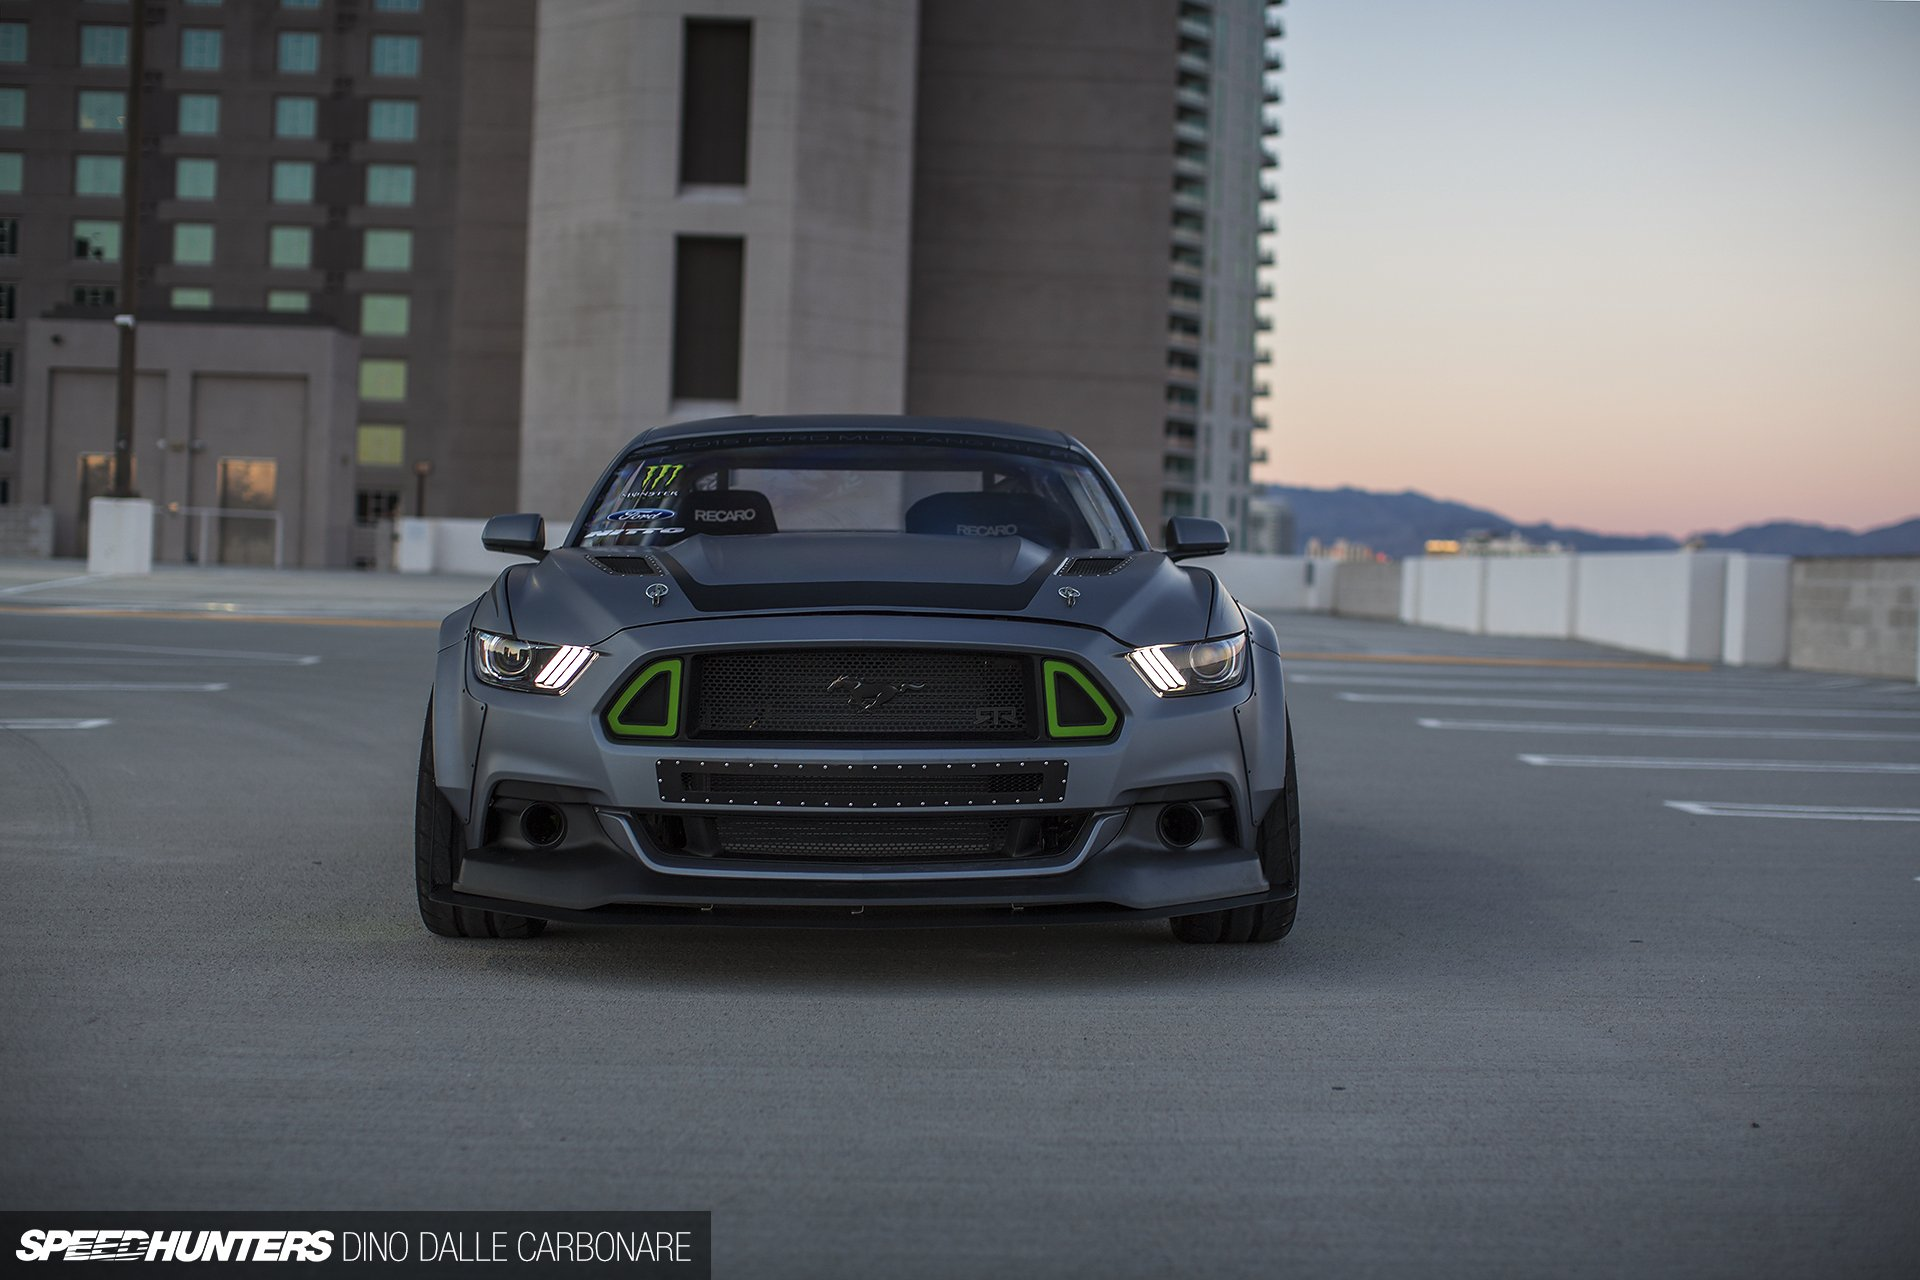 2015 Ford Mustang Rtr Muscle Drift Race Racing Tuning Hot